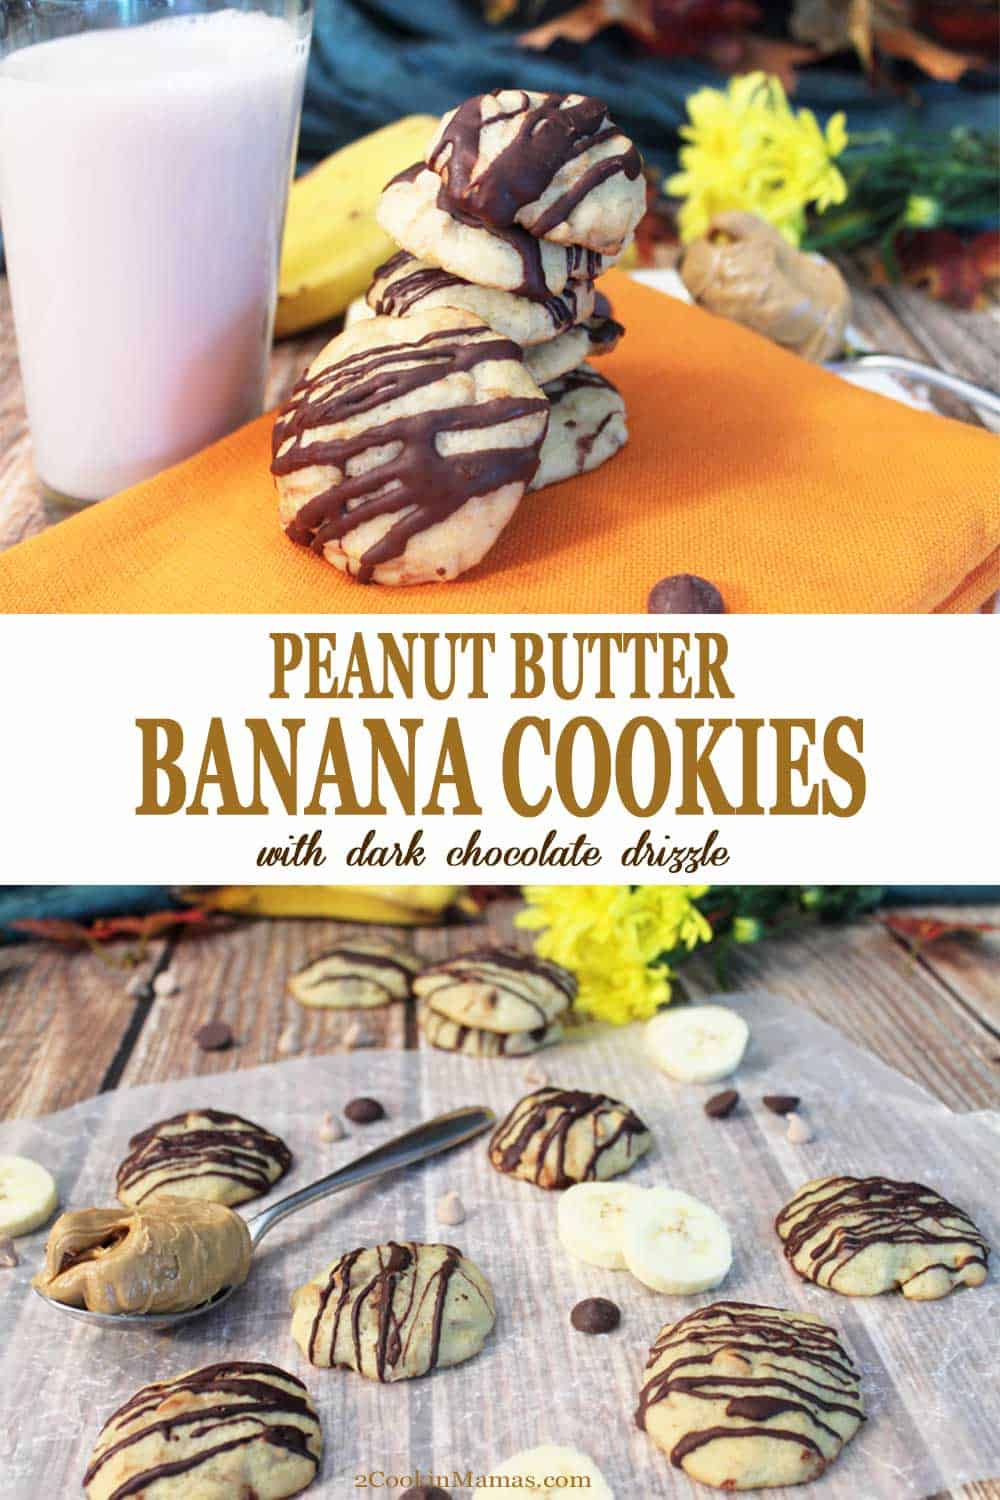 Peanut Butter Banana Cookies | 2 Cookin Mamas These Peanut Butter Banana Cookies take the combo of peanut butter & banana to a whole new level! Chewy banana bread-like cookies are stuffed with peanut butter chips then drizzled with dark chocolate. Yum! #cookies #bananas #peanutbutter #recipe #chocolate